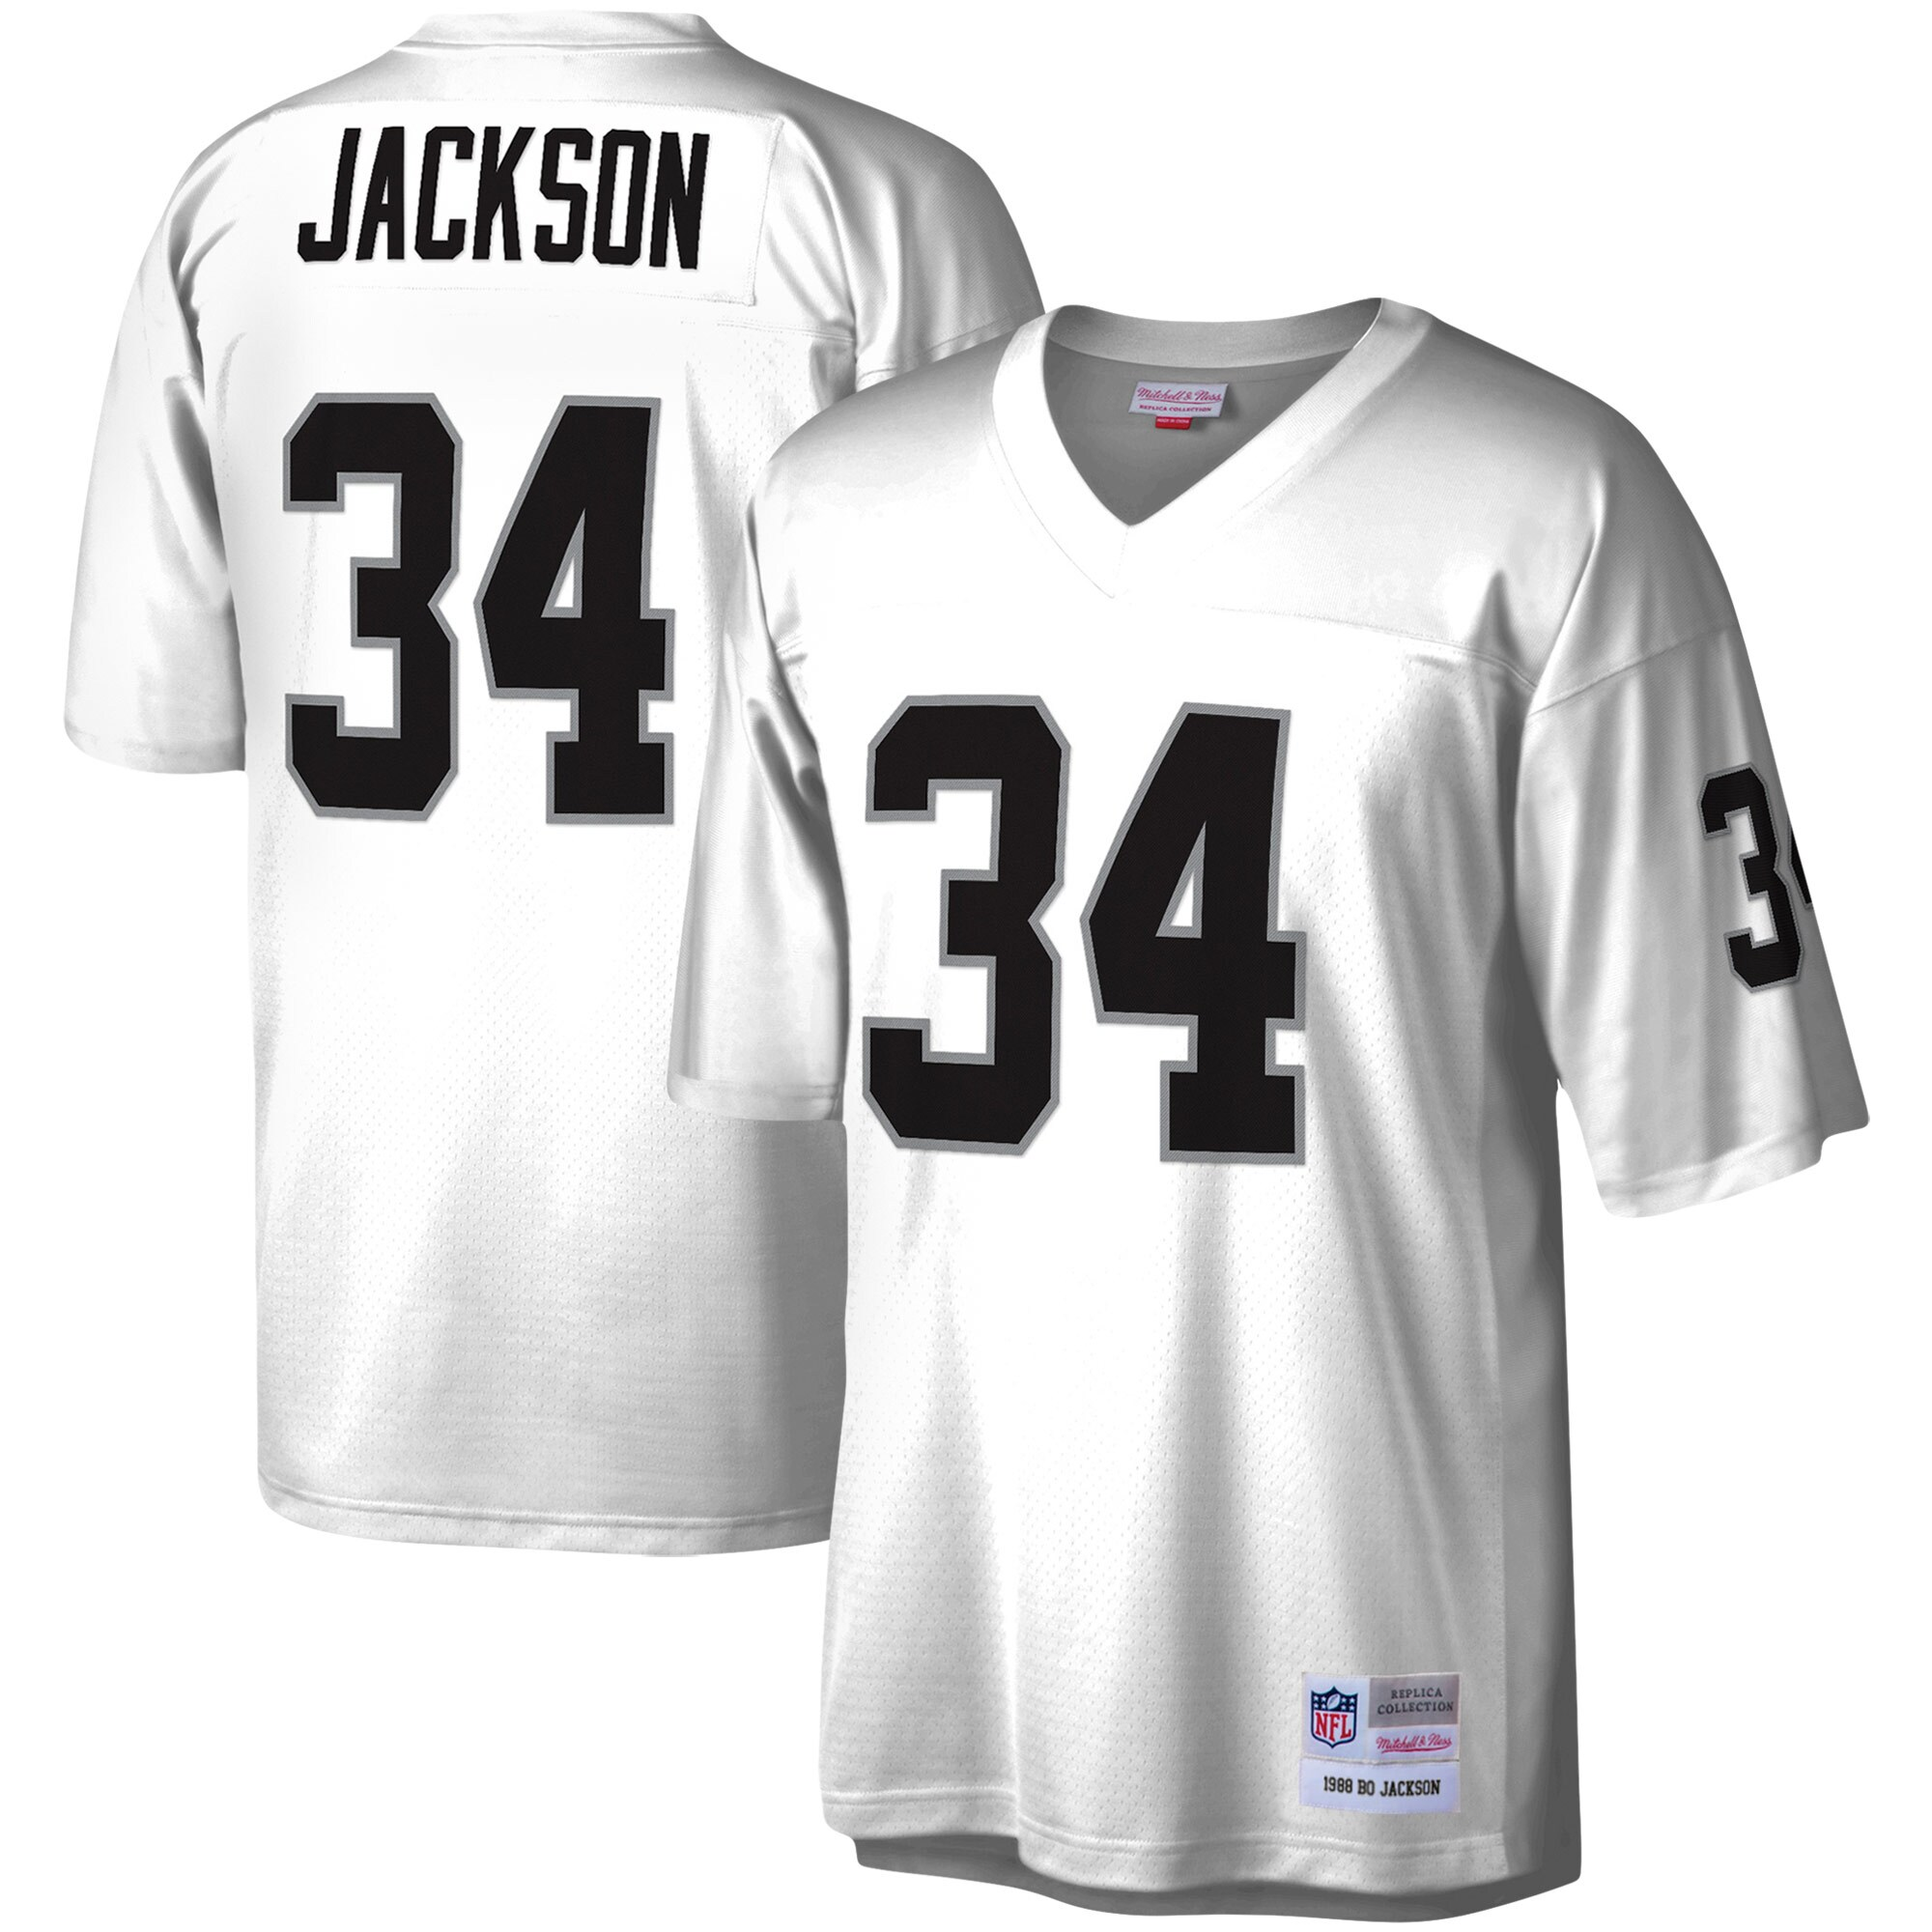 The 7 coolest Las Vegas Raiders jerseys you can get right now